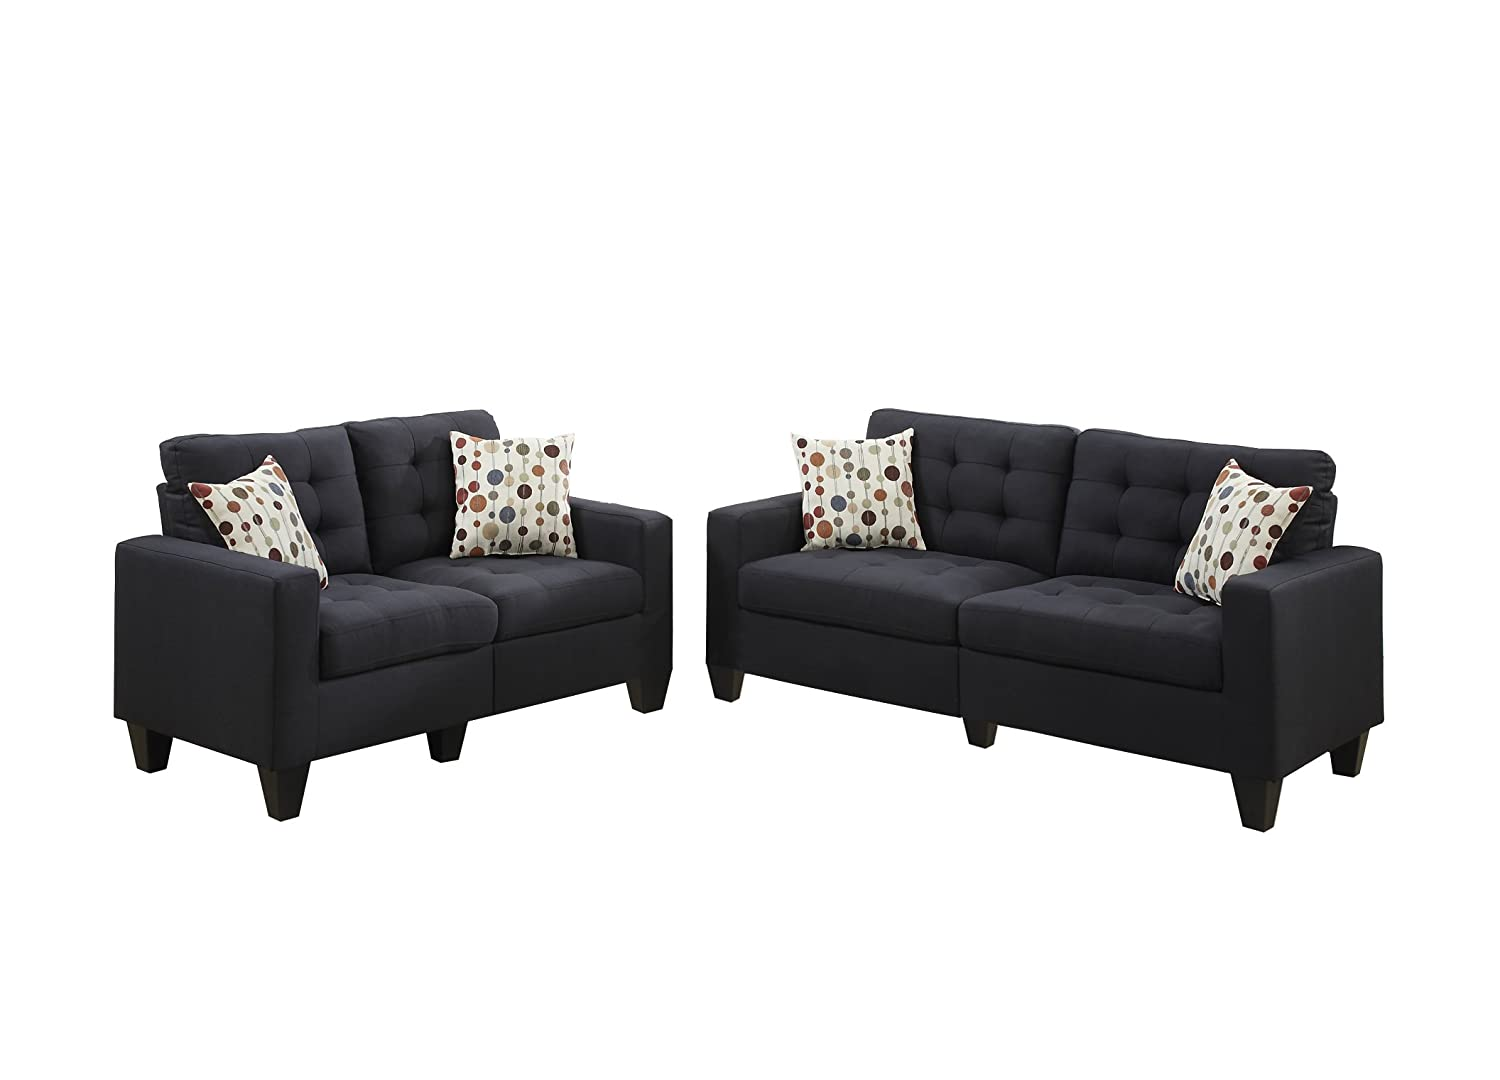 Sofa and loveseat sets under 500 top living room sets Sofa and loveseat sets under 500